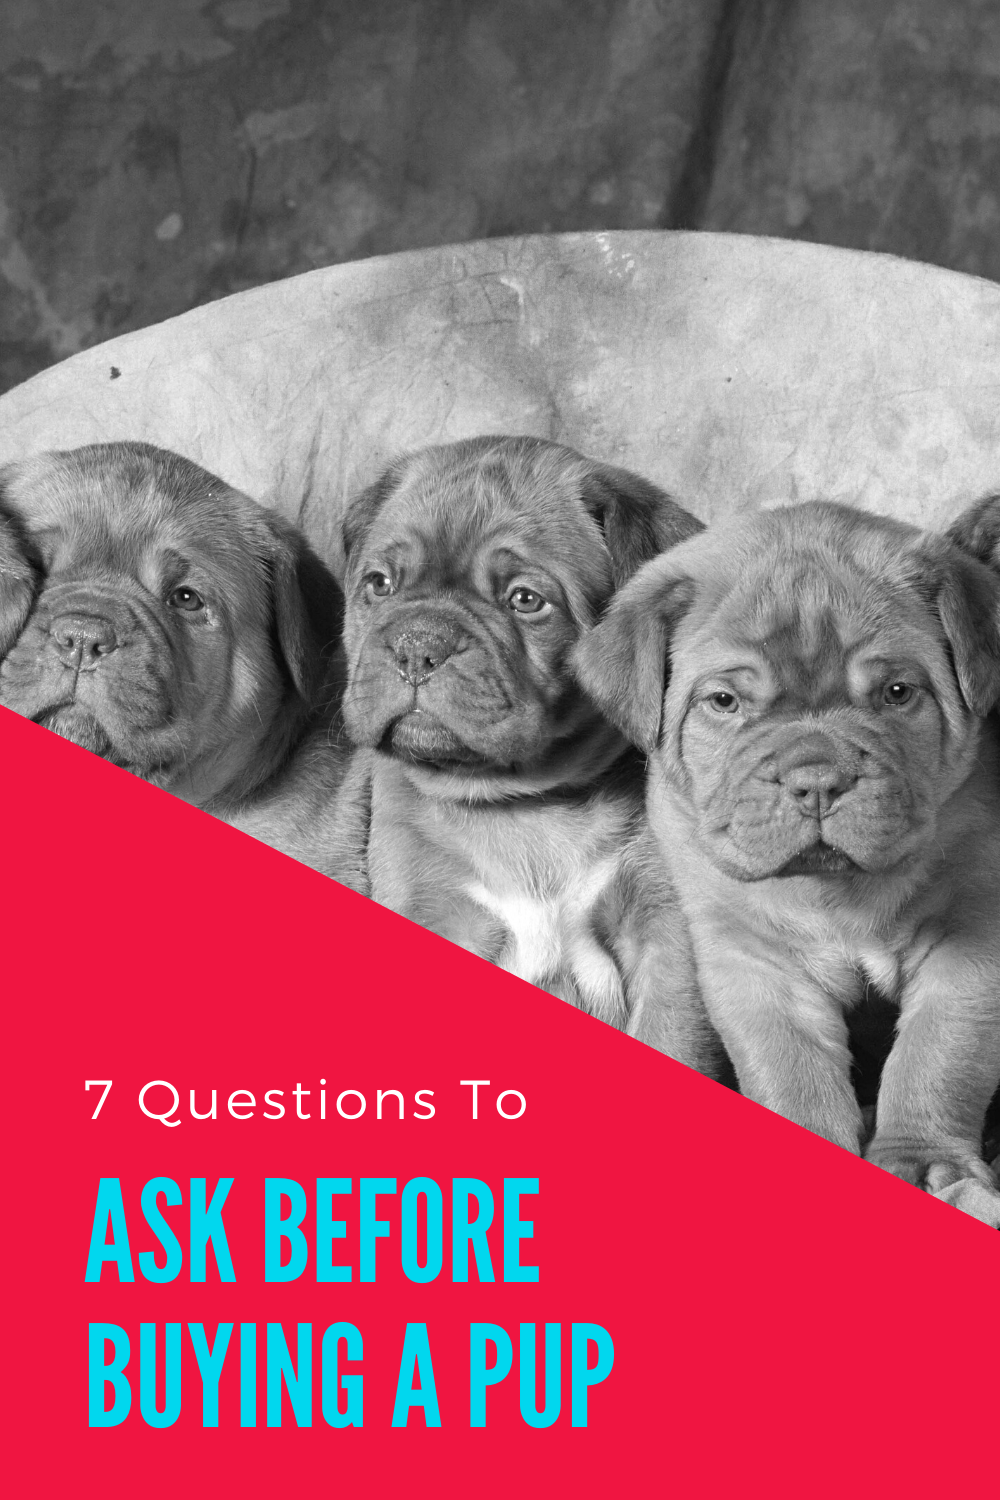 7 Questions To Ask When Buying A Puppy